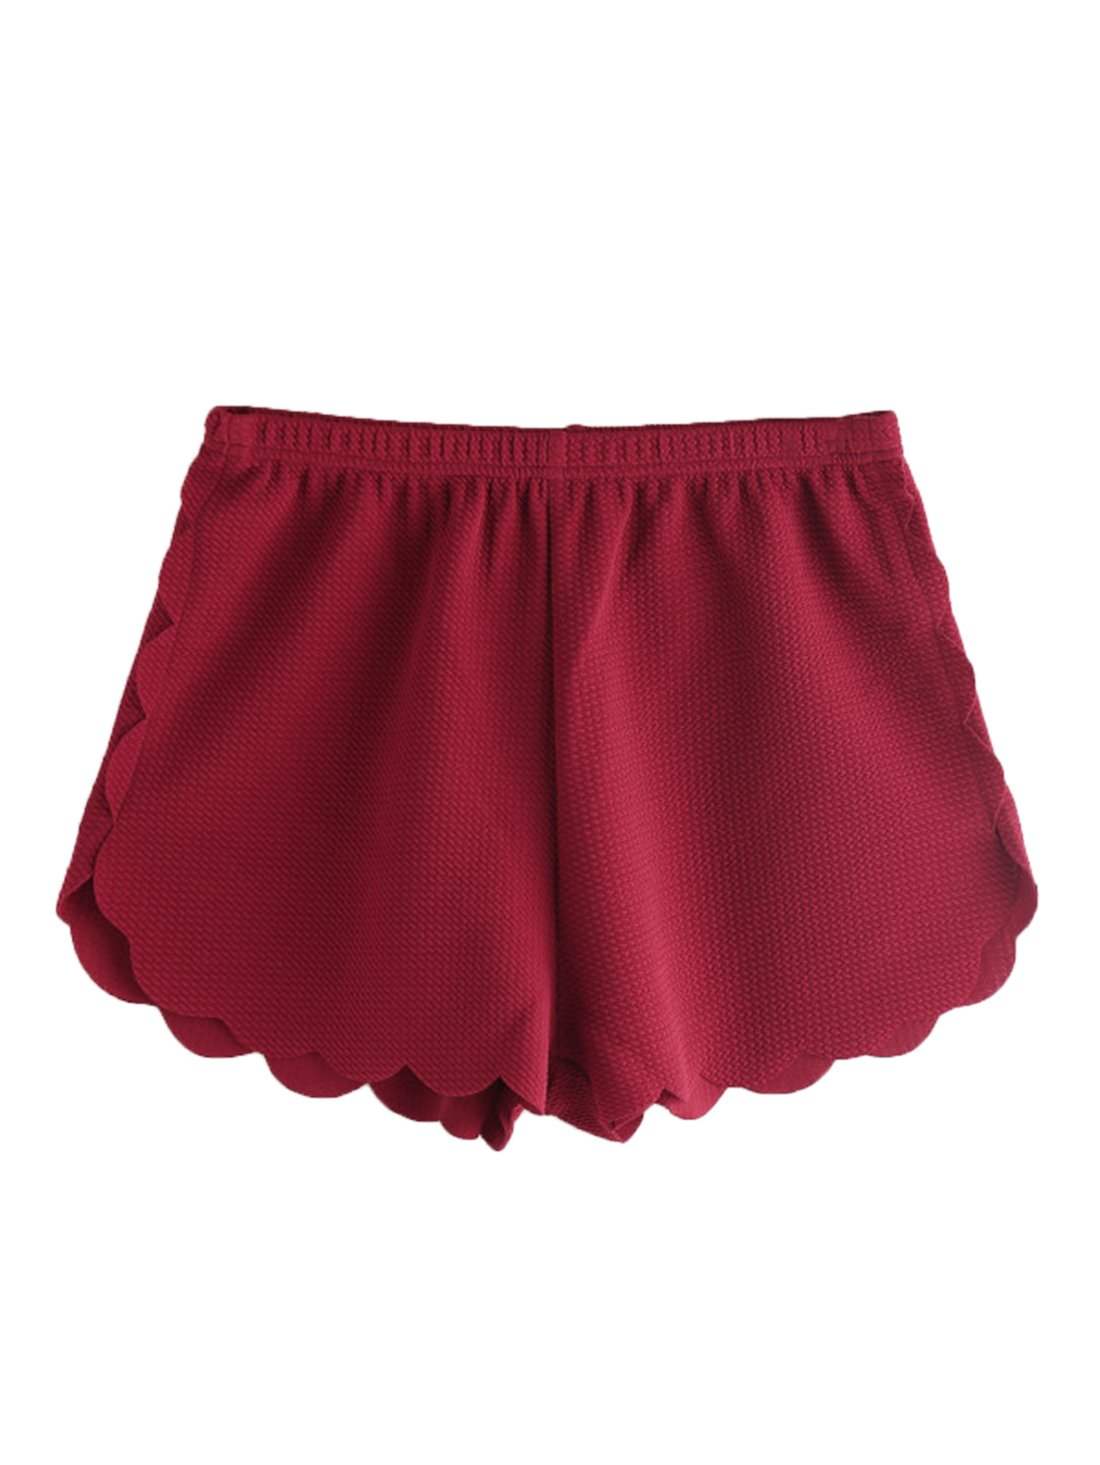 MakeMeChic Women's Solid Elastic Waist Scalloped Casual Fitted Shorts Burgundy S